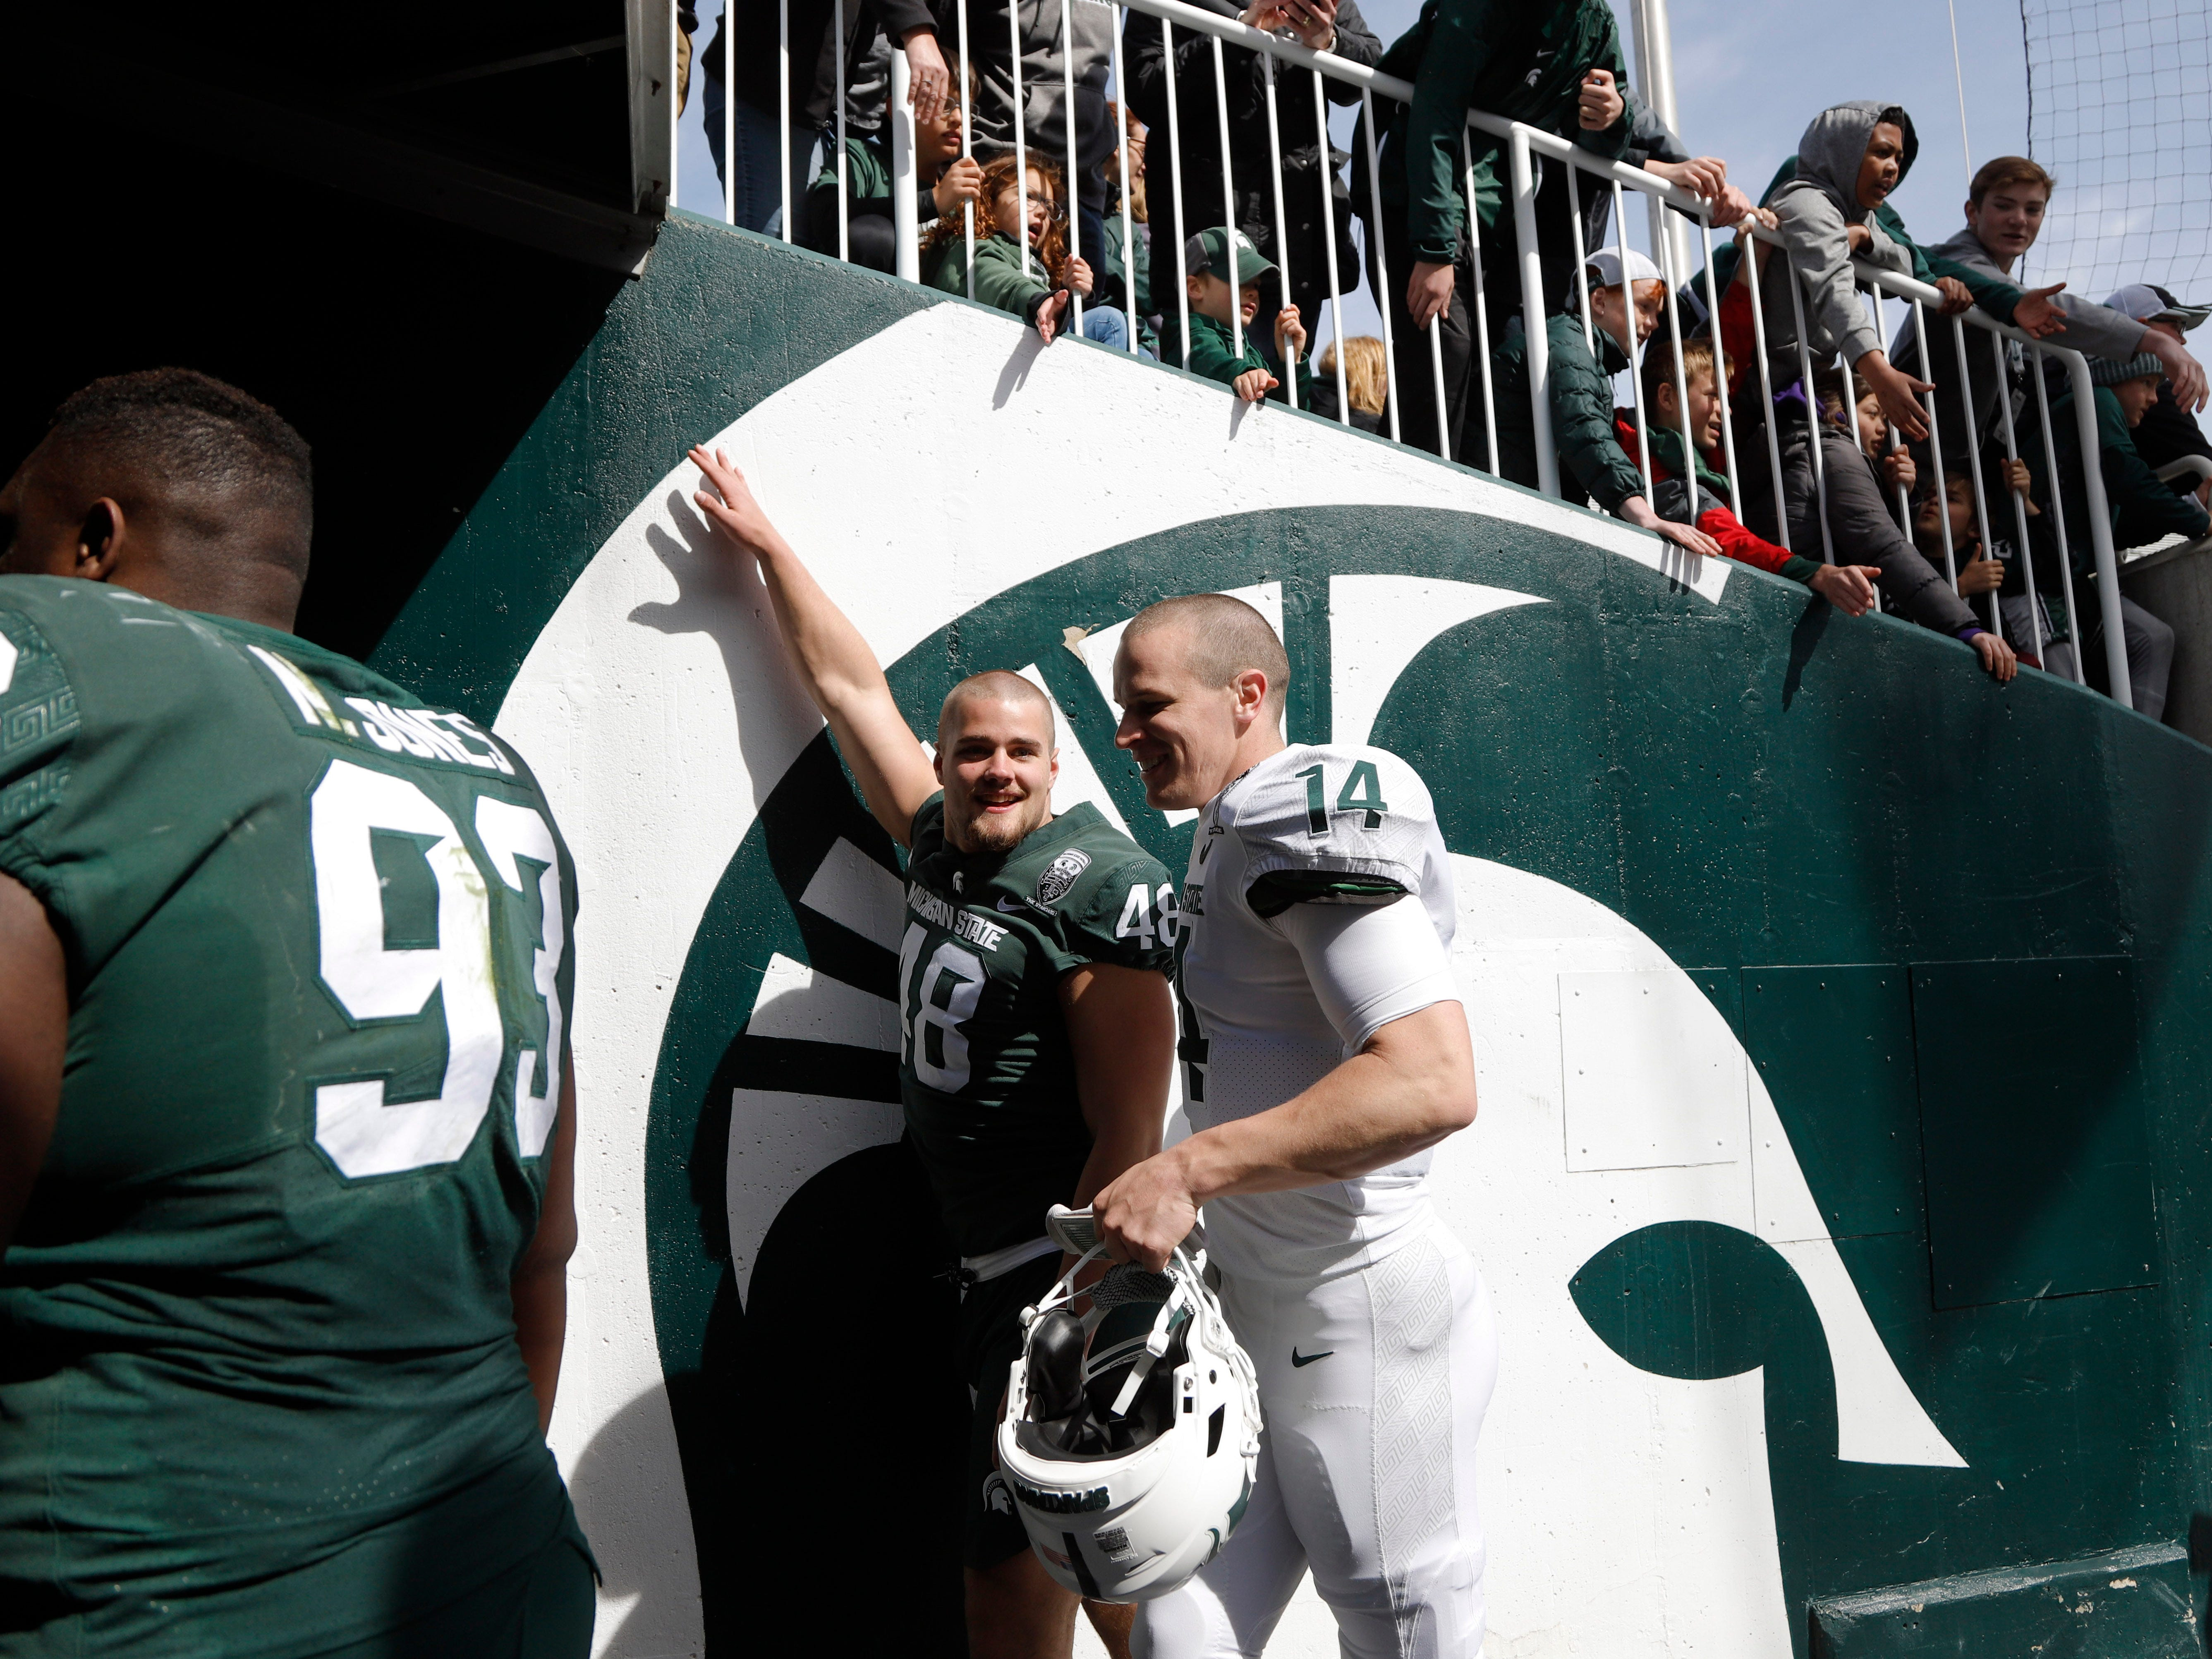 Michigan State quarterback Brian Lewerke, right, and defensive end Kenny Willekes (48) leave the field after their spring scrimmage Saturday, April 13, 2019, in East Lansing.